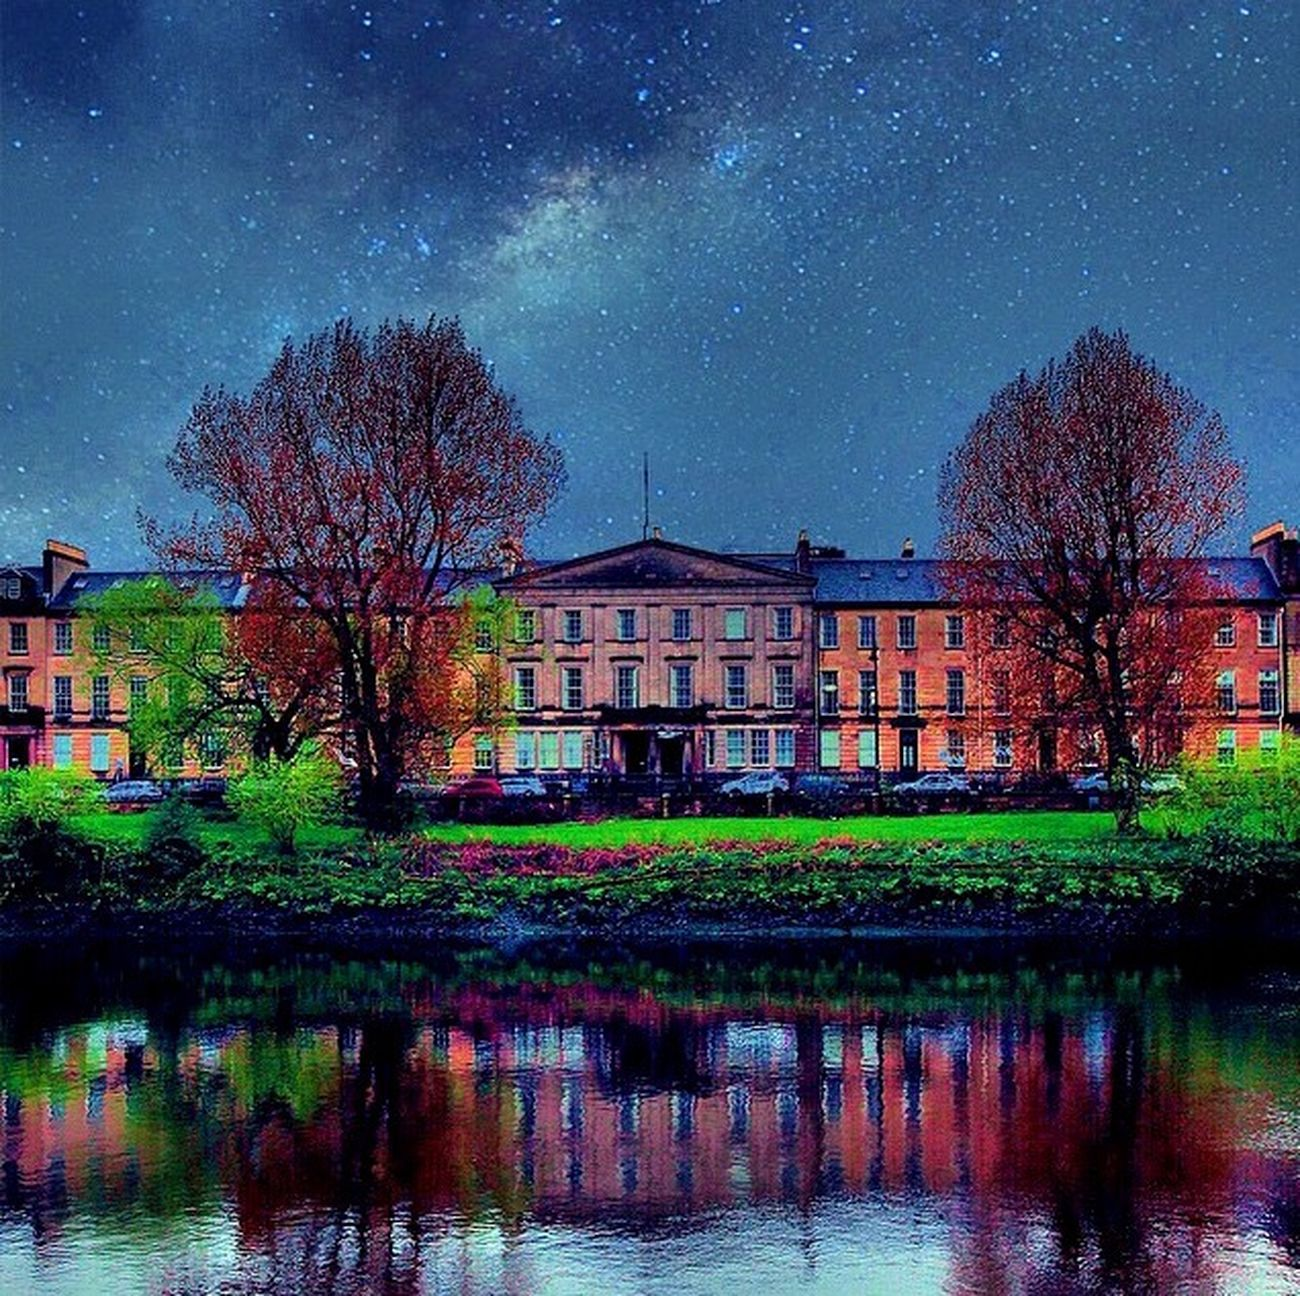 Exploring Style Reflection Building Building Exterior Star - Space Sky Built Structure Travel Destinations Reflection Lake Nature Outdoors Arts Culture And Entertainment Taking Pictures Taking Photos Travelphotography Travel Photooftheday Picoftheday Travel Photography Streetphoto_color EyeEm Gallery Architecture Building Feature Buildingstyles Buildings & Sky